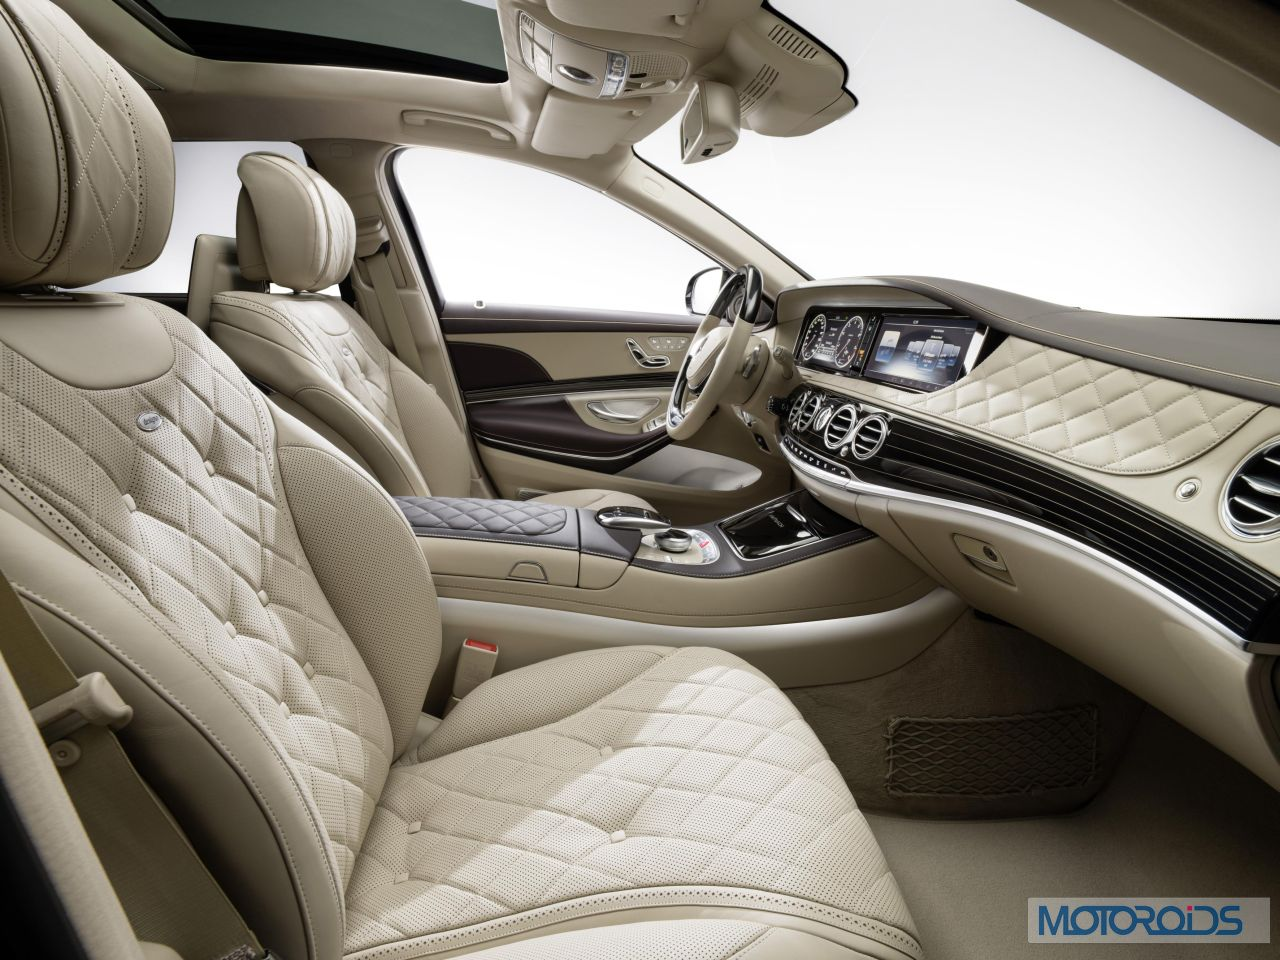 Mercedes Maybach S600 And S500 Launched In India Prices Start At